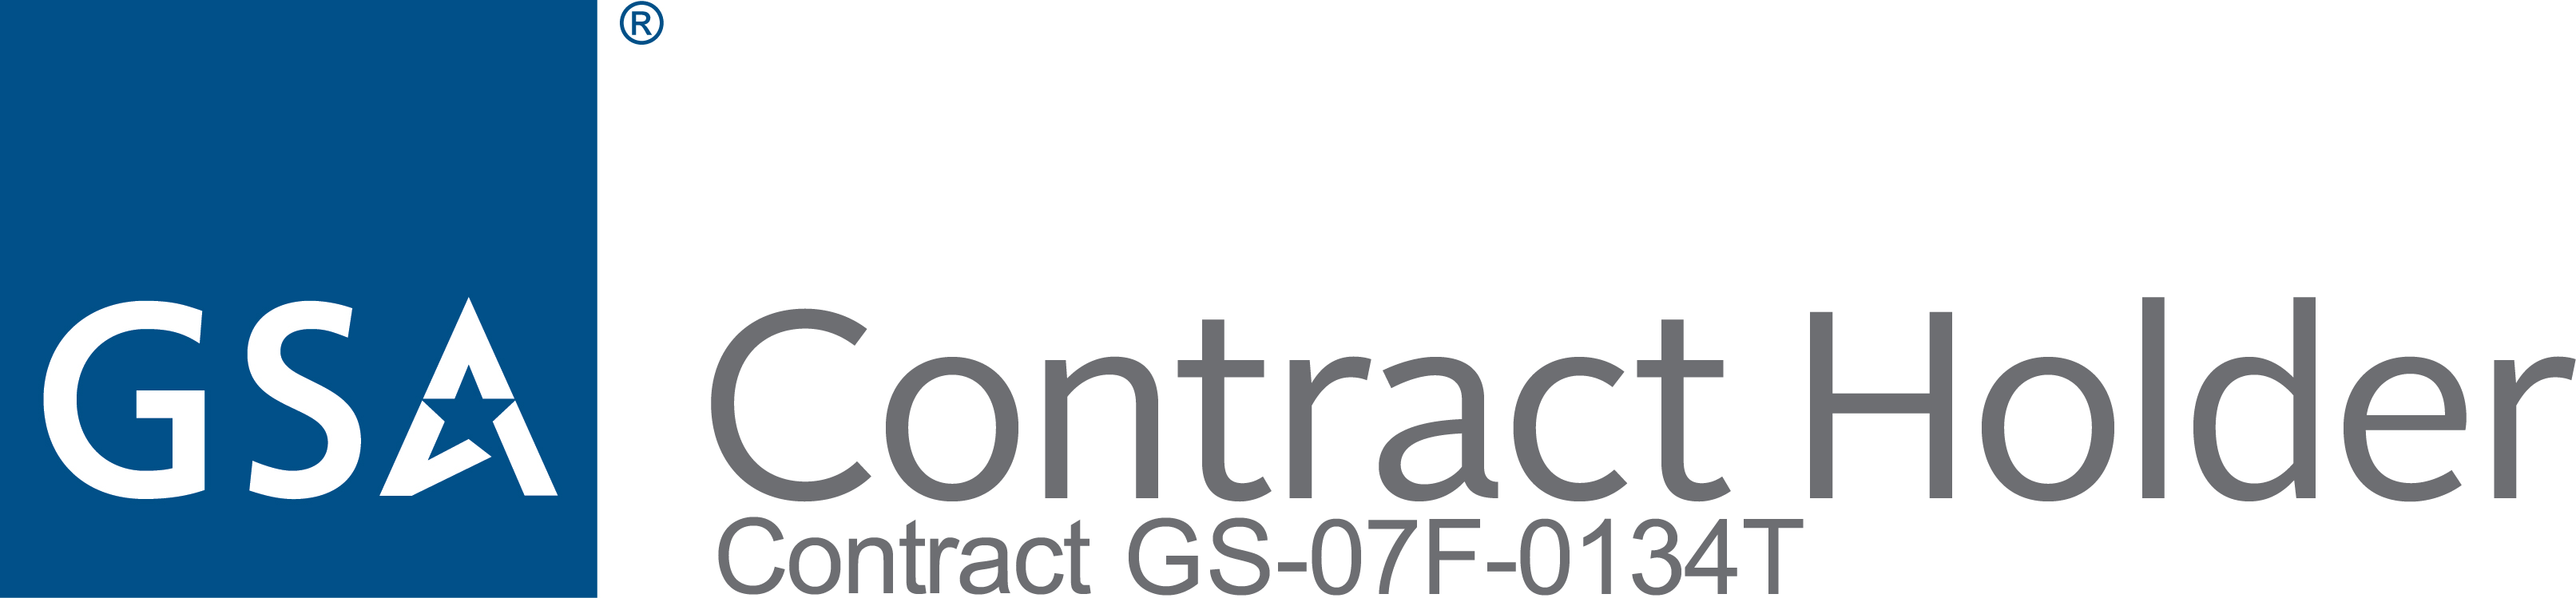 contract-holder-starmark-color-w-contract-number-arial-copy.png